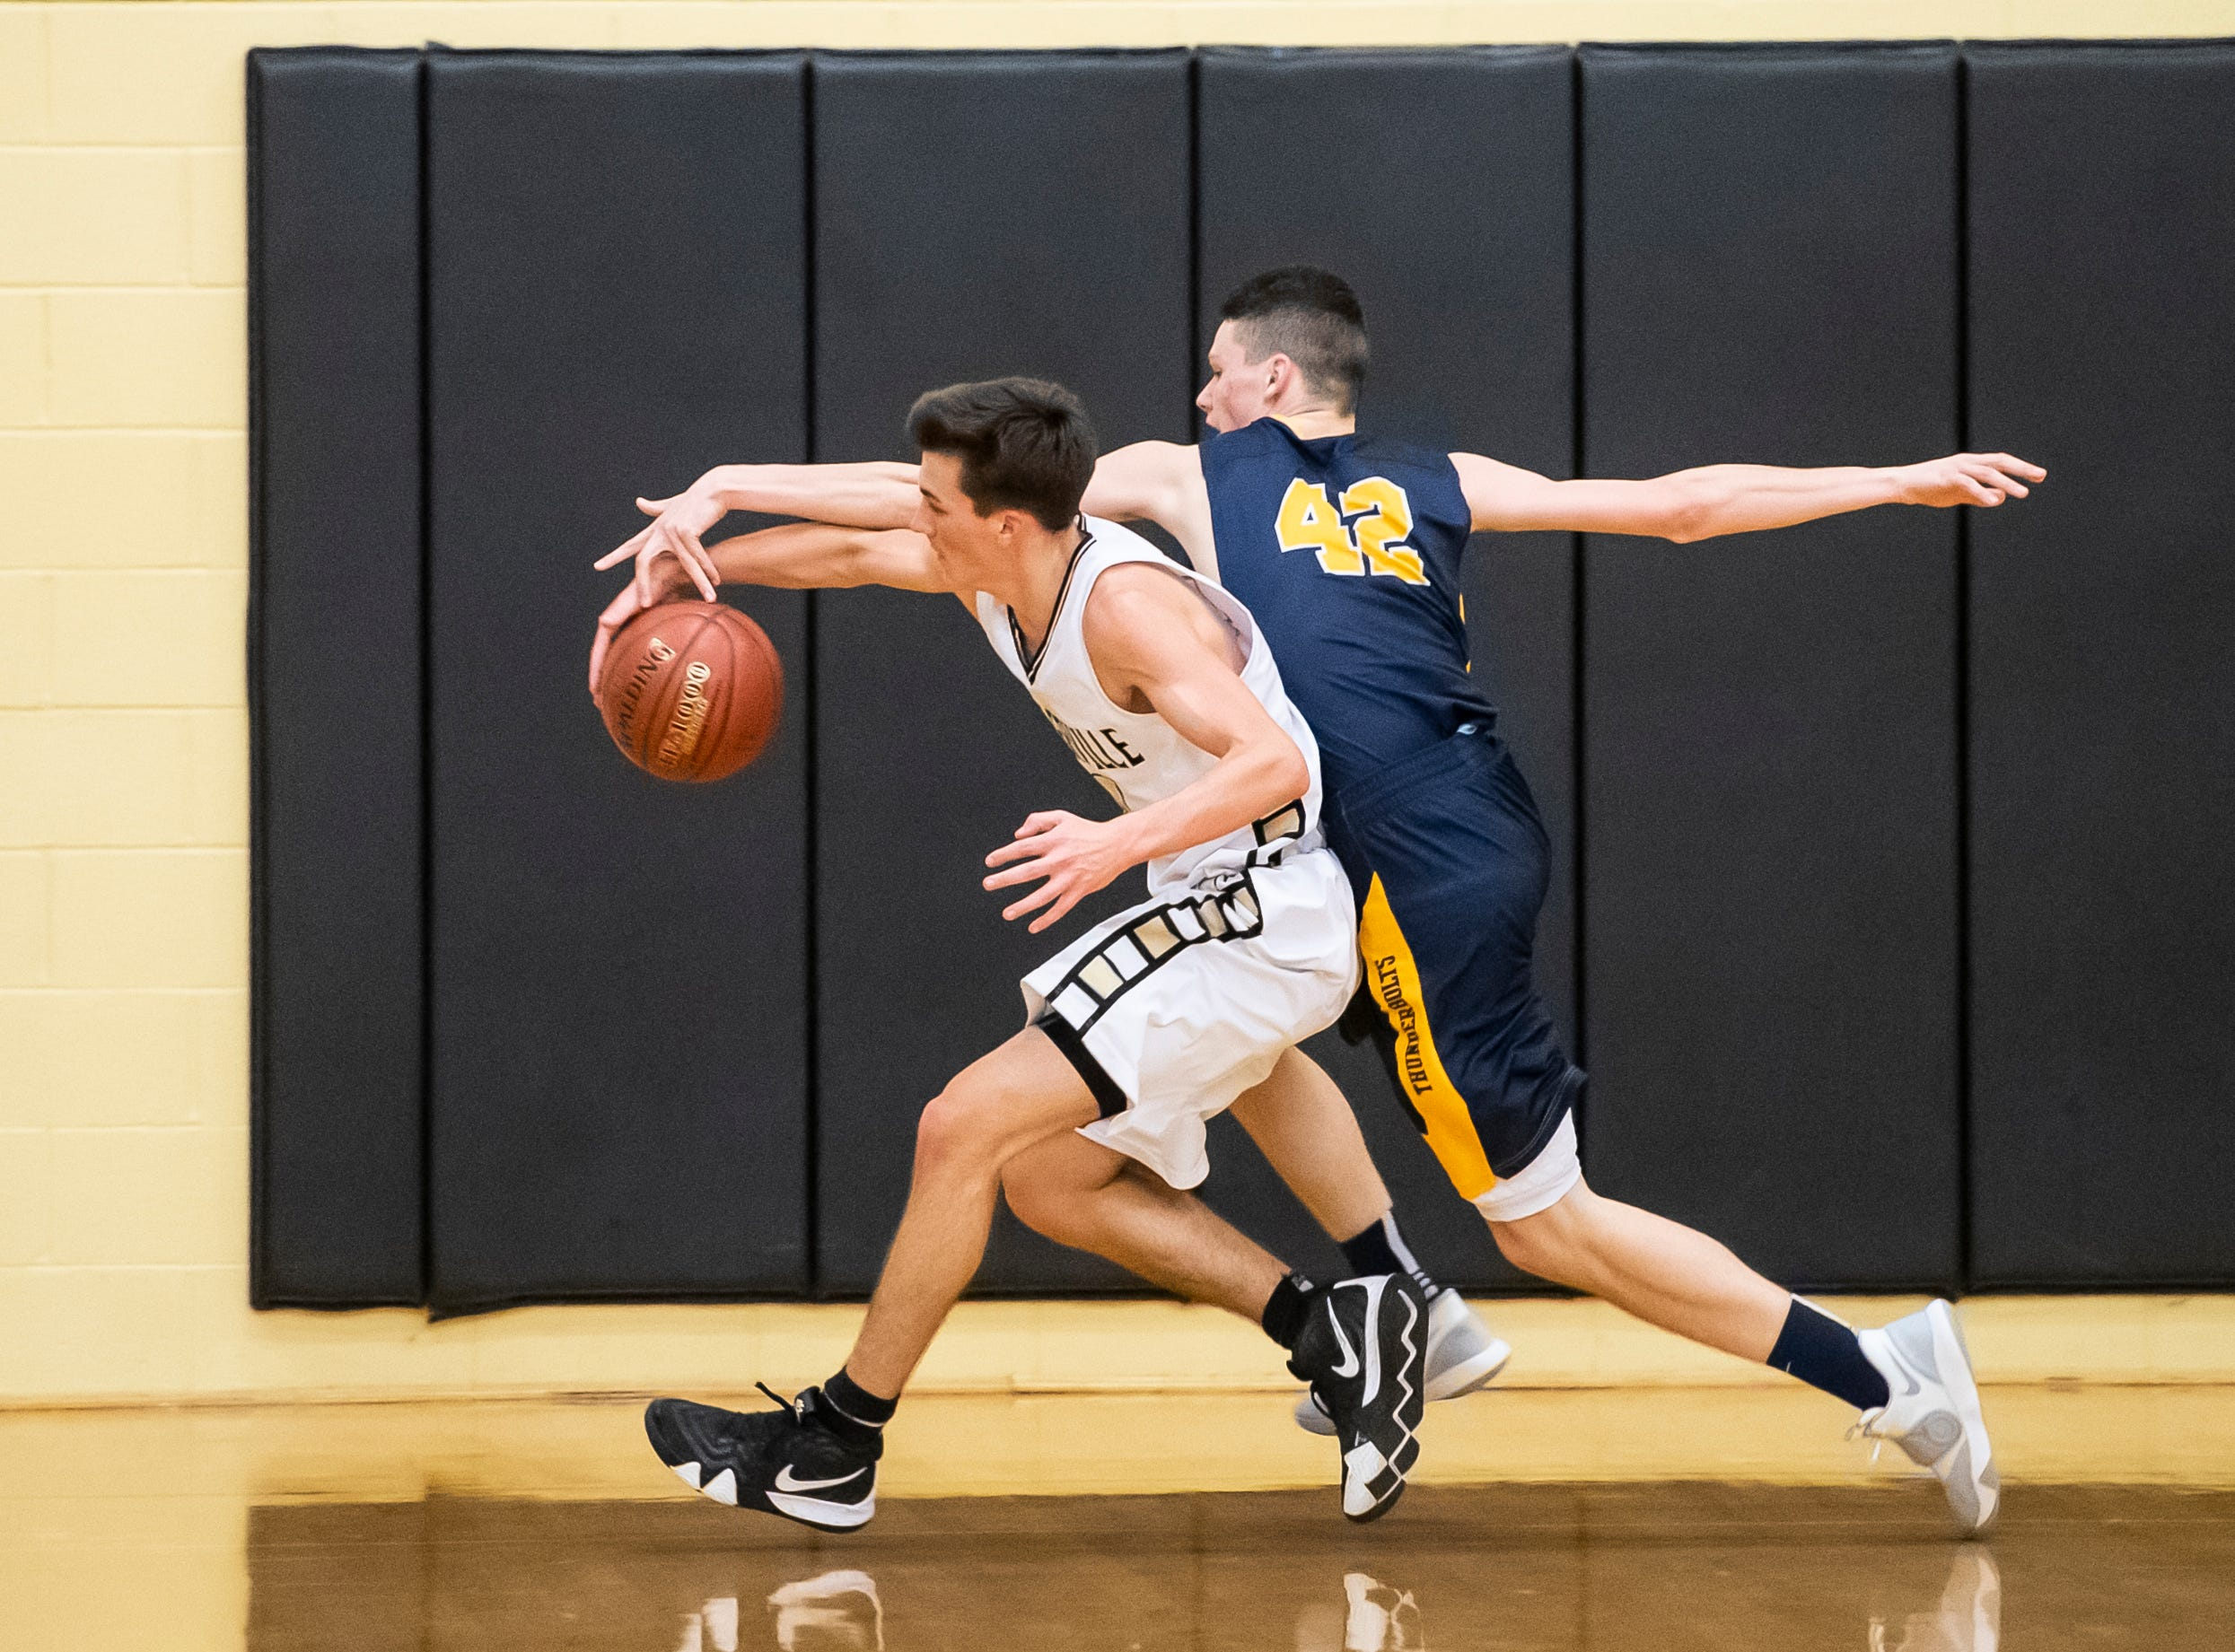 Biglerville's Colby Martin keeps the ball away from Littlestown's Brayden Staub (42) during play on Friday, January 11, 2019. The Canners fell 65-38.